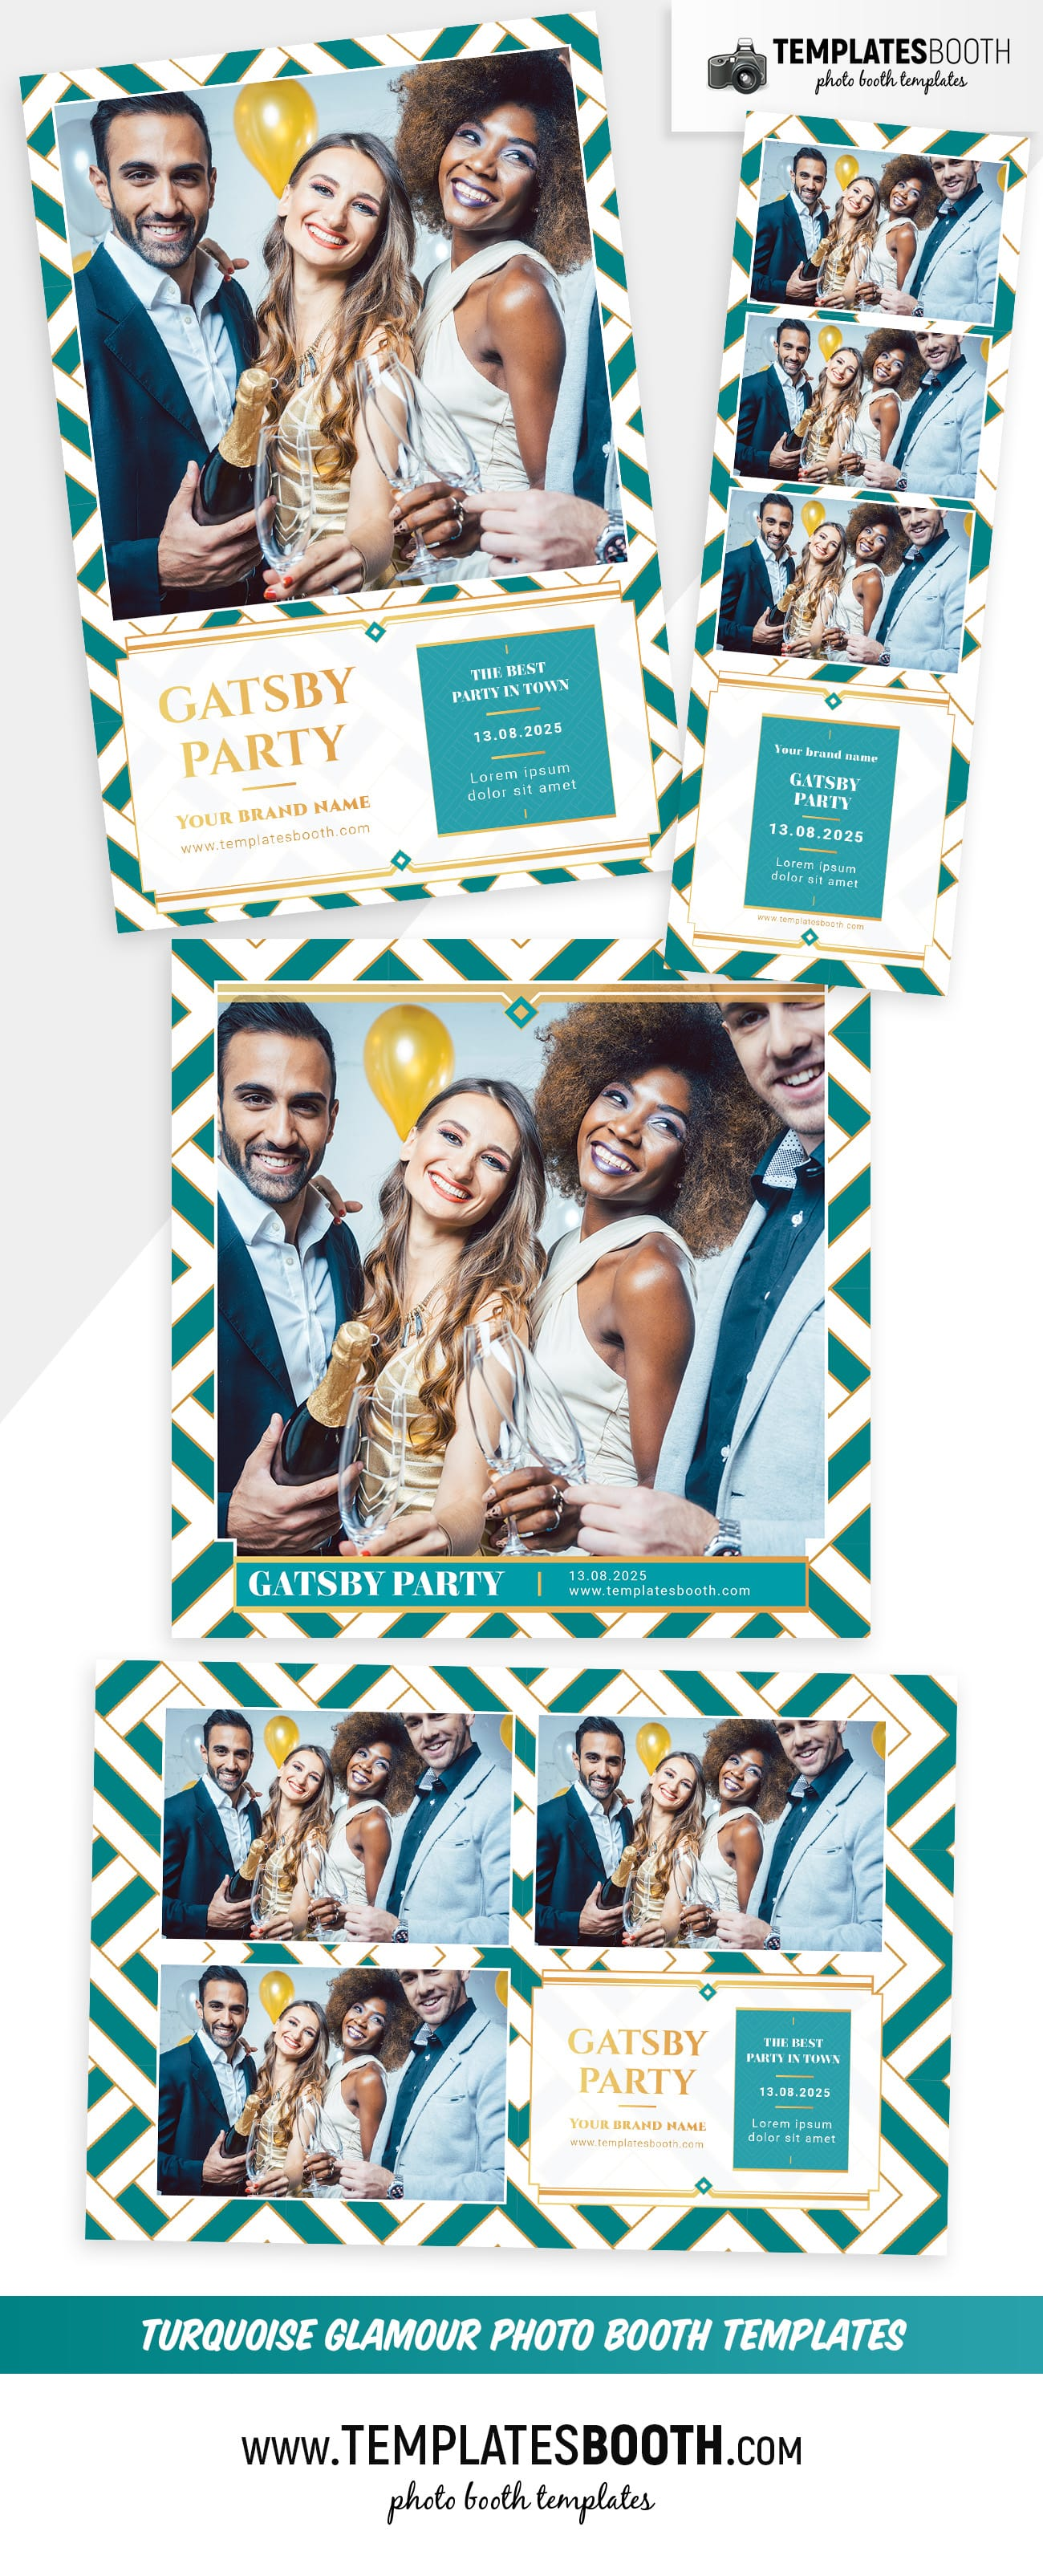 Turquoise Glamour Photo Booth Template (Full Preview)